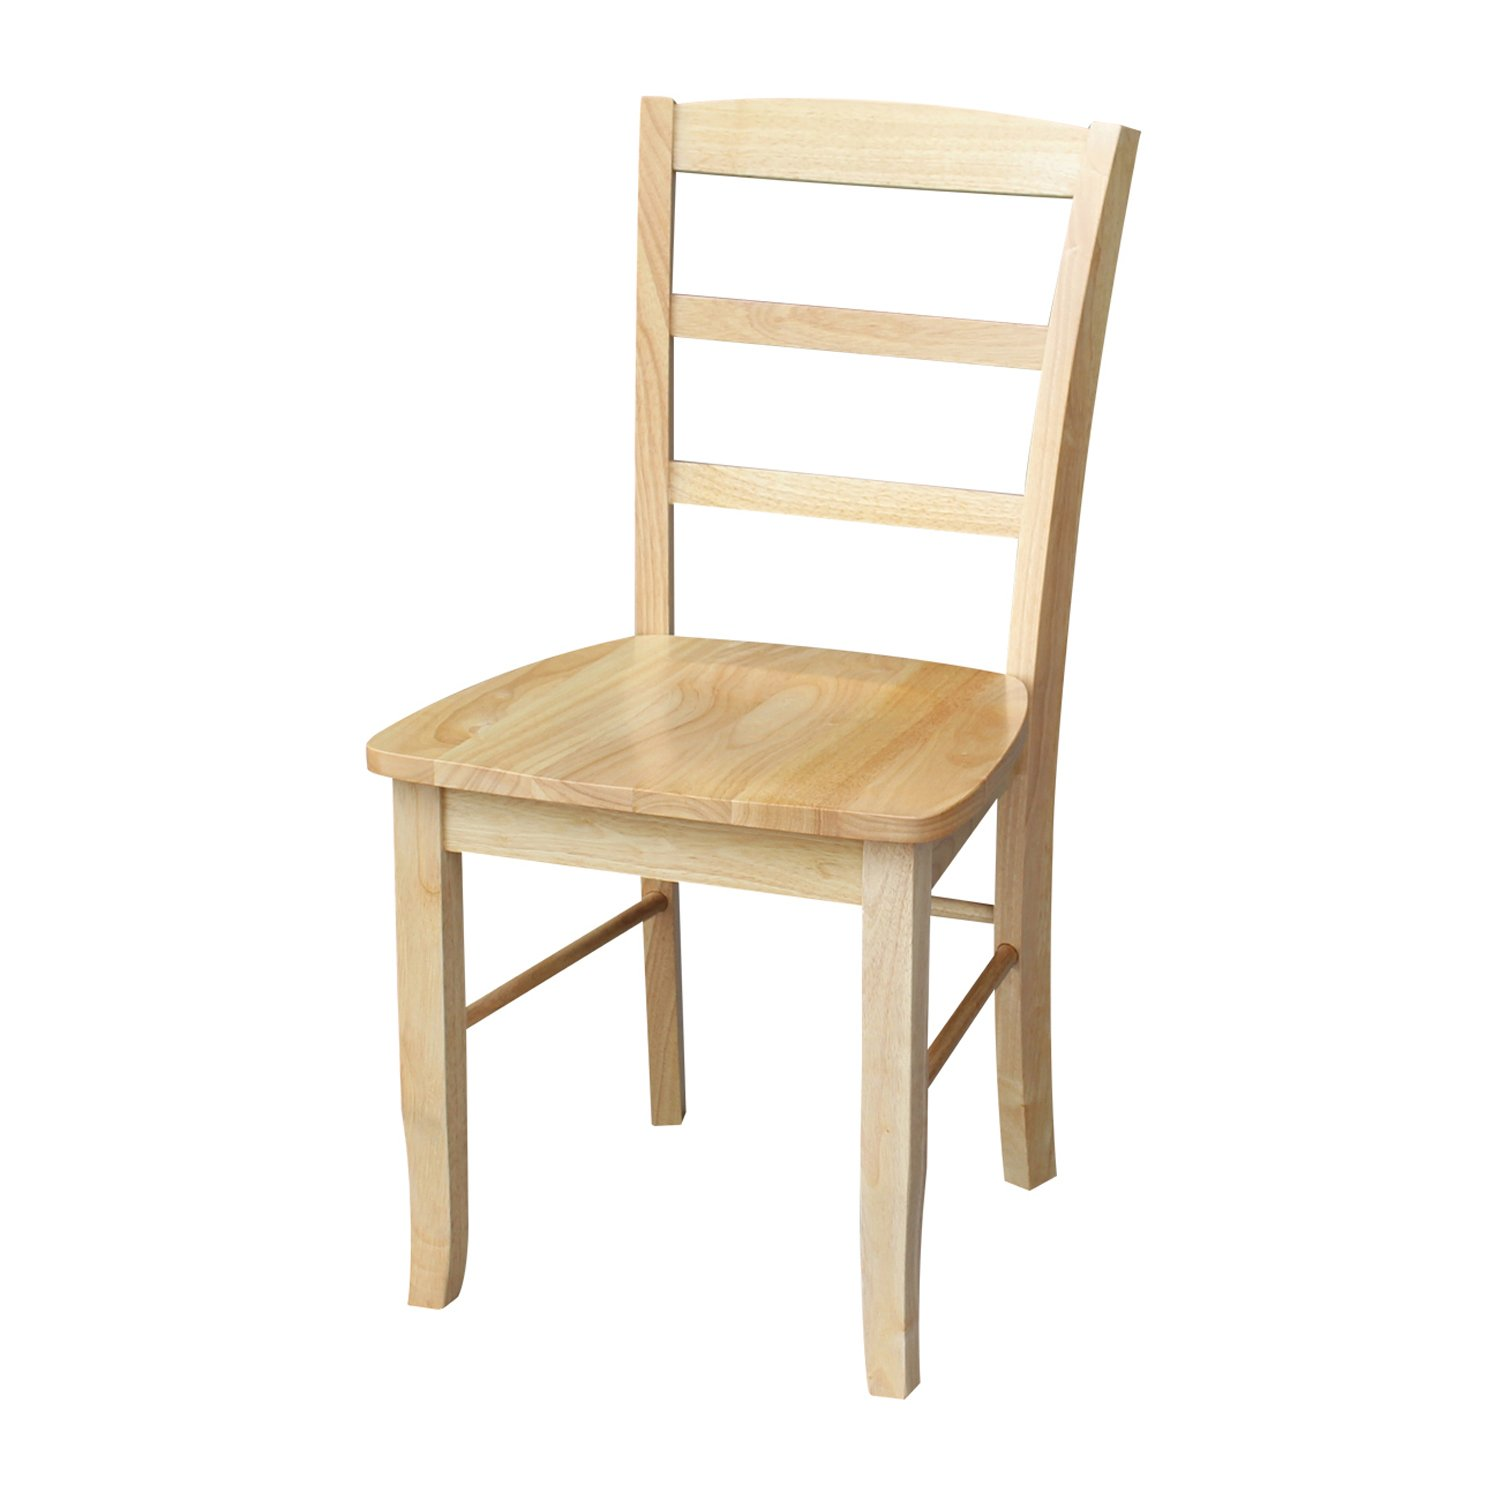 International Concepts C01-2P Pair of Madrid LadderBack Chairs, Natural